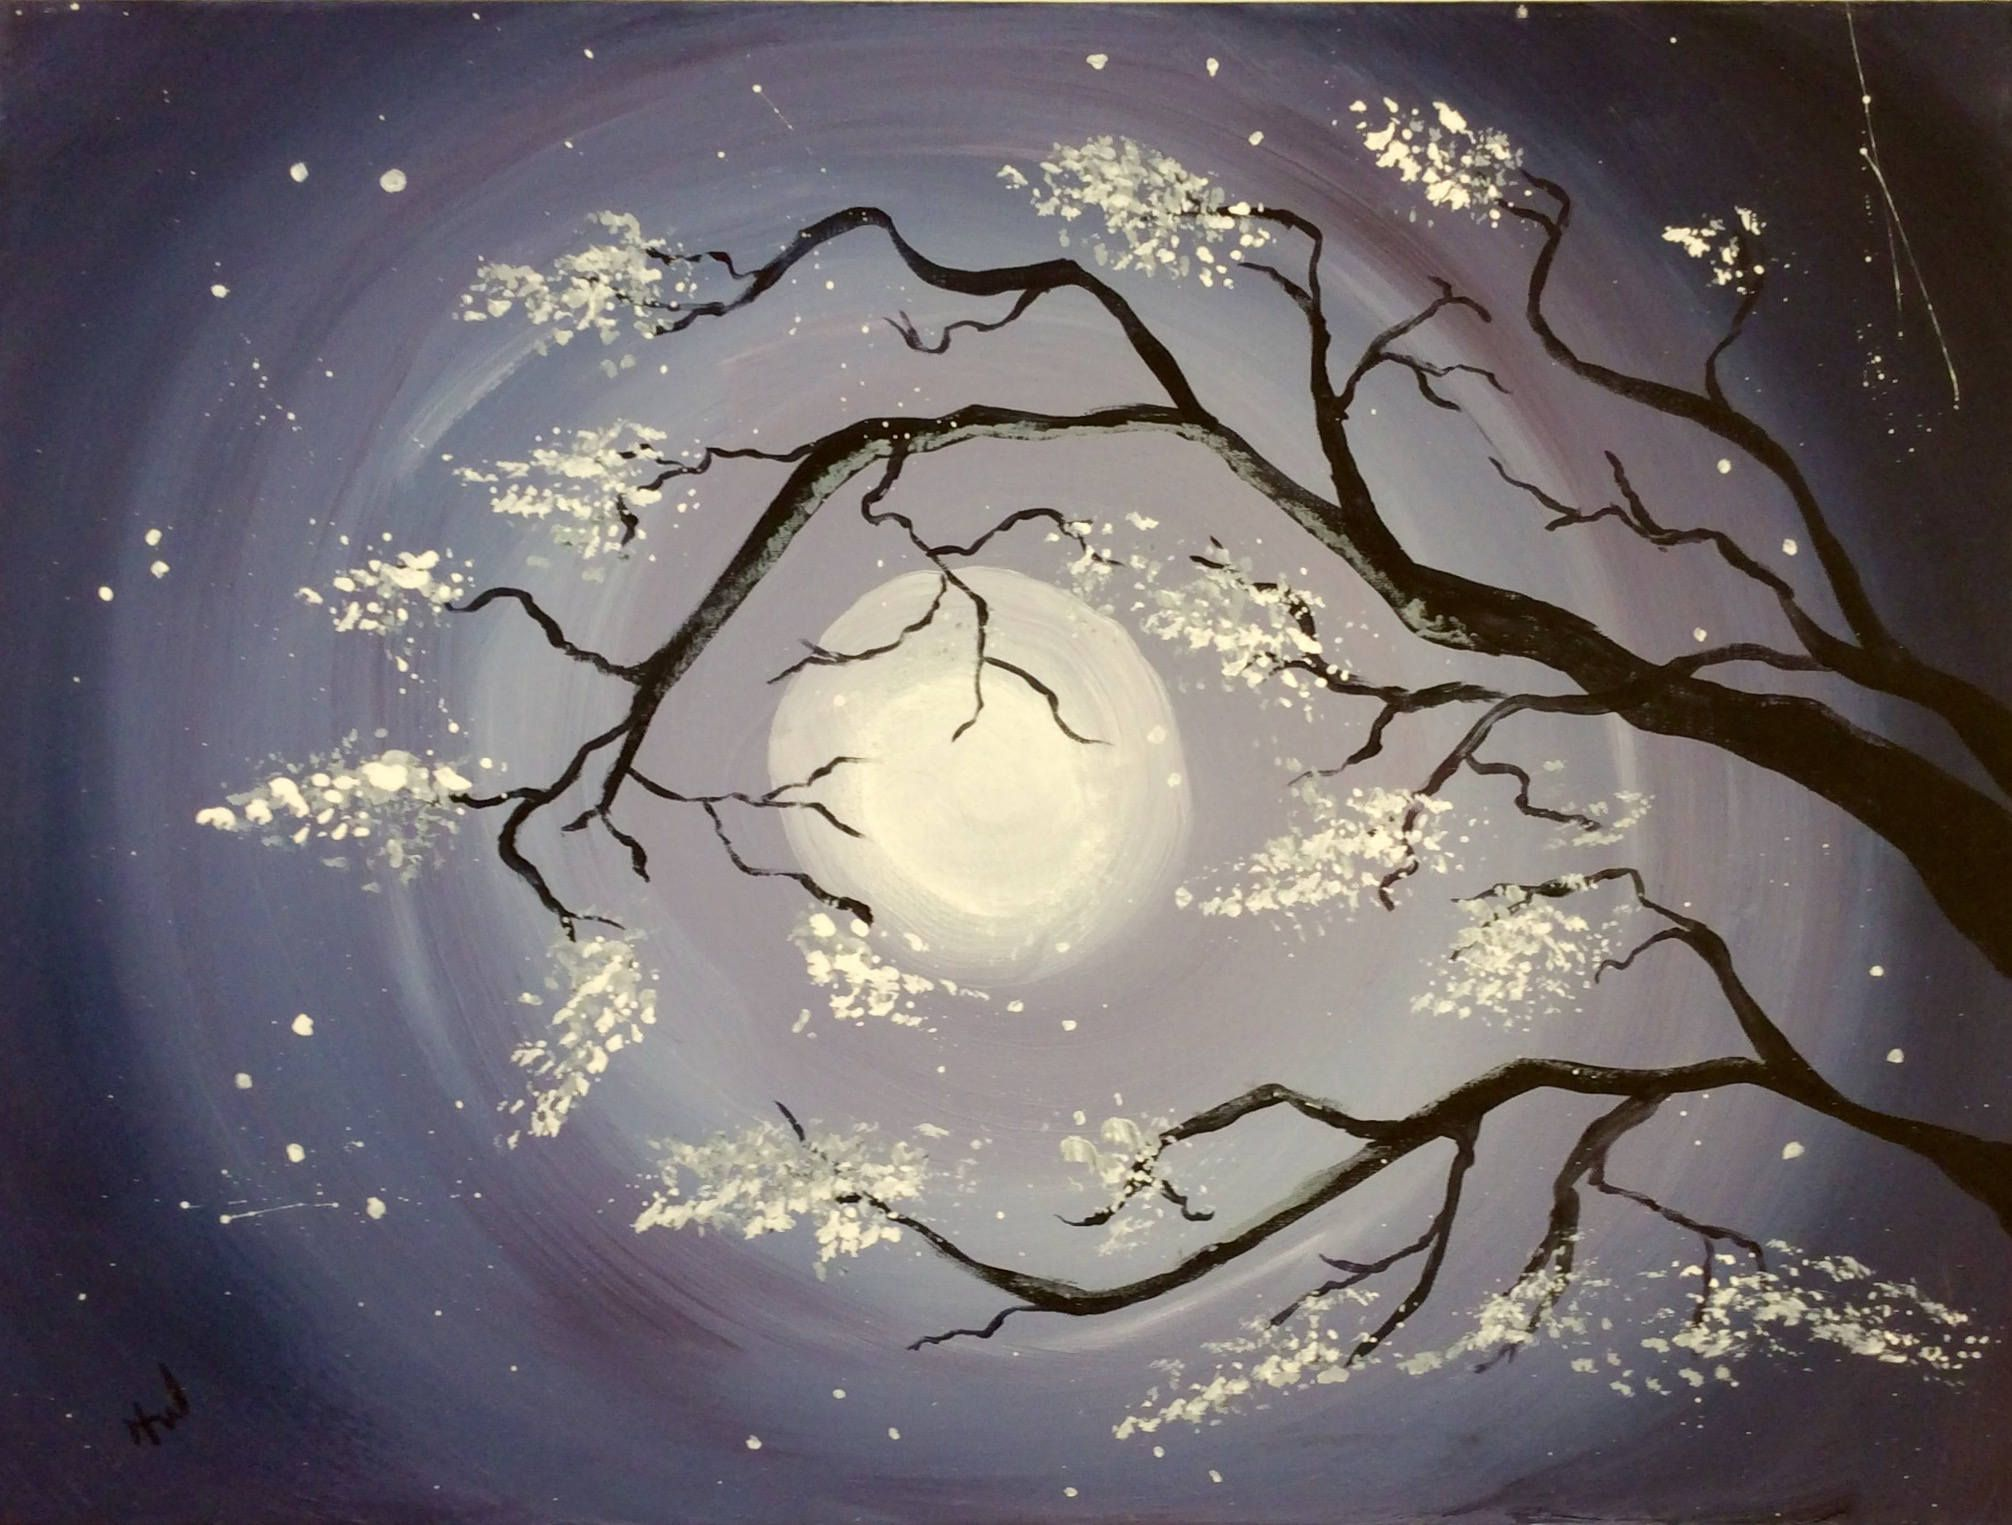 Original Acrylic Painting Midnight Orchard Featuring A View Through Blooming Cherry Blossom Tree Branches To A Vibr Painting Artwork Design Cherry Blossom Tree